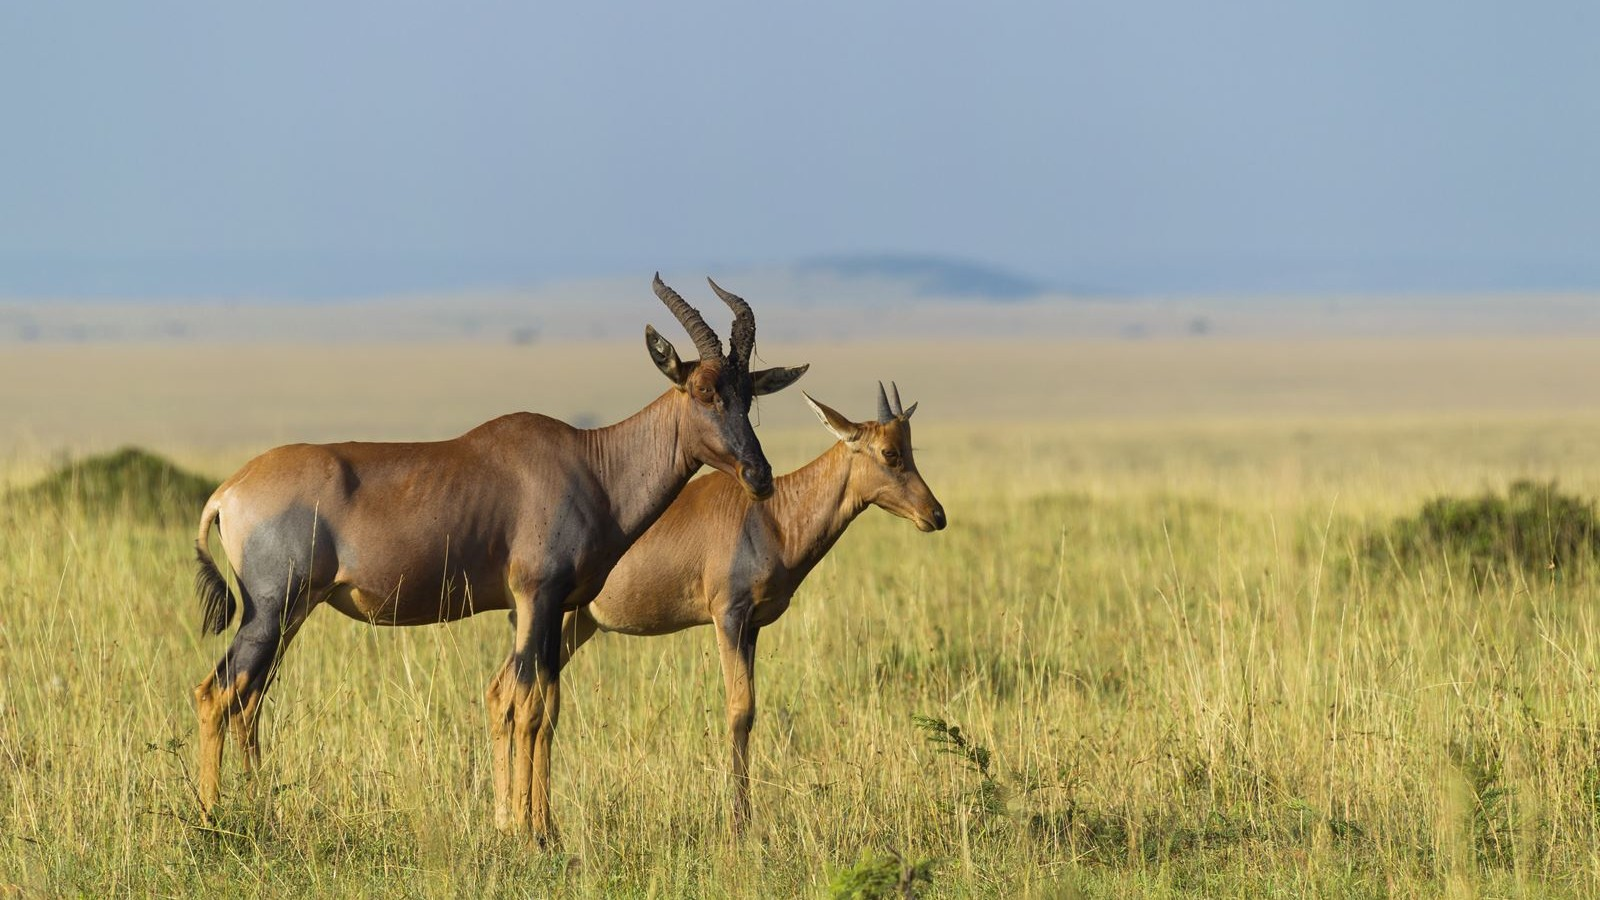 Topi mother with calf, Masai Mara National Reserve, Kenya.